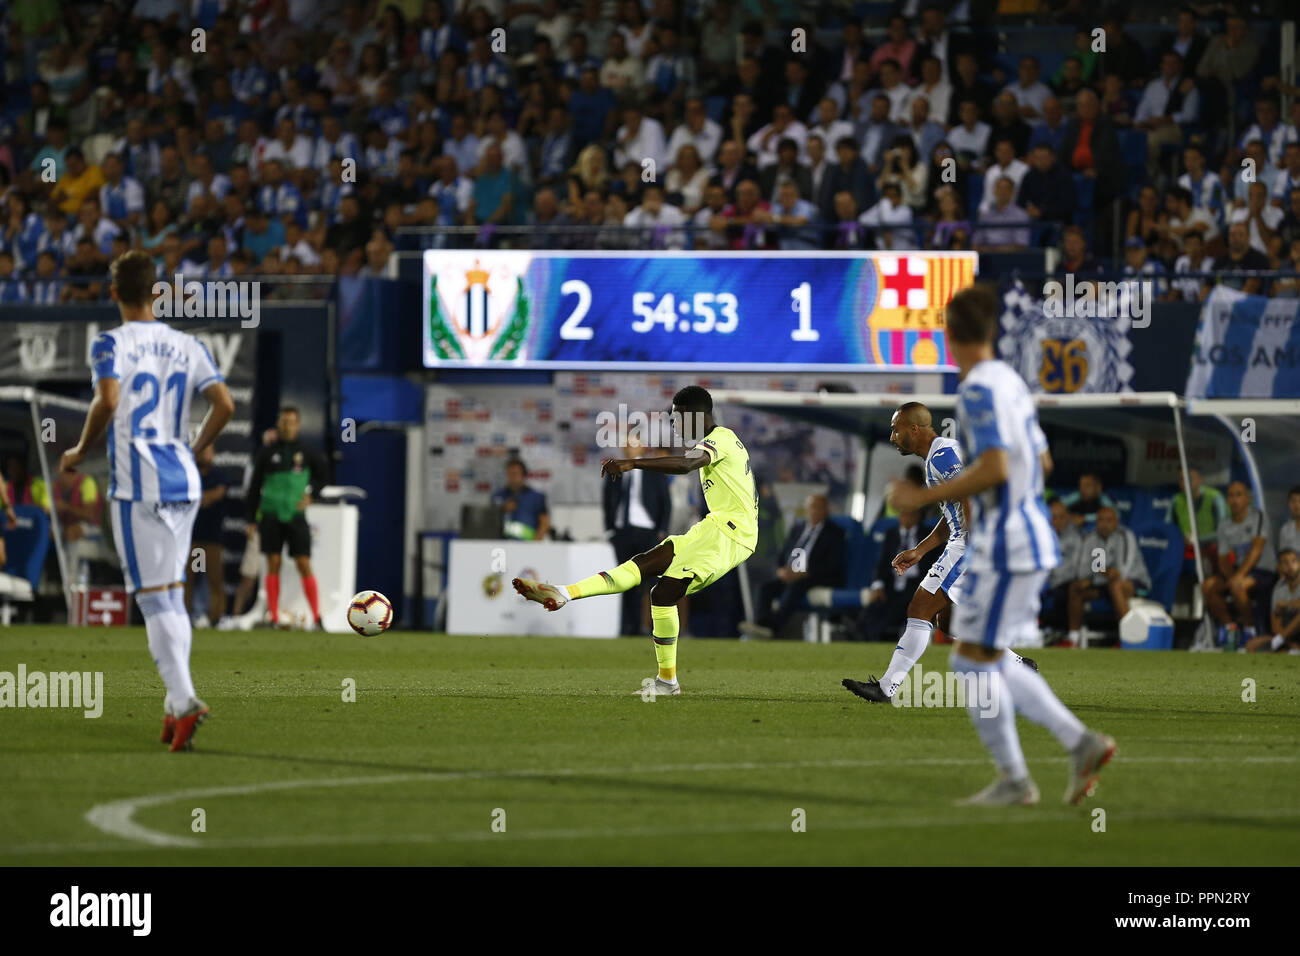 Leganes, Madrid, Spain. 26th Sep, 2018. Ousmane Dembele (FC Barcelona) seen in action during the game.La Liga match between CD Leganes and FC Barcelona at Butarque Stadium. Credit: Manu Reino/SOPA Images/ZUMA Wire/Alamy Live News - Stock Image